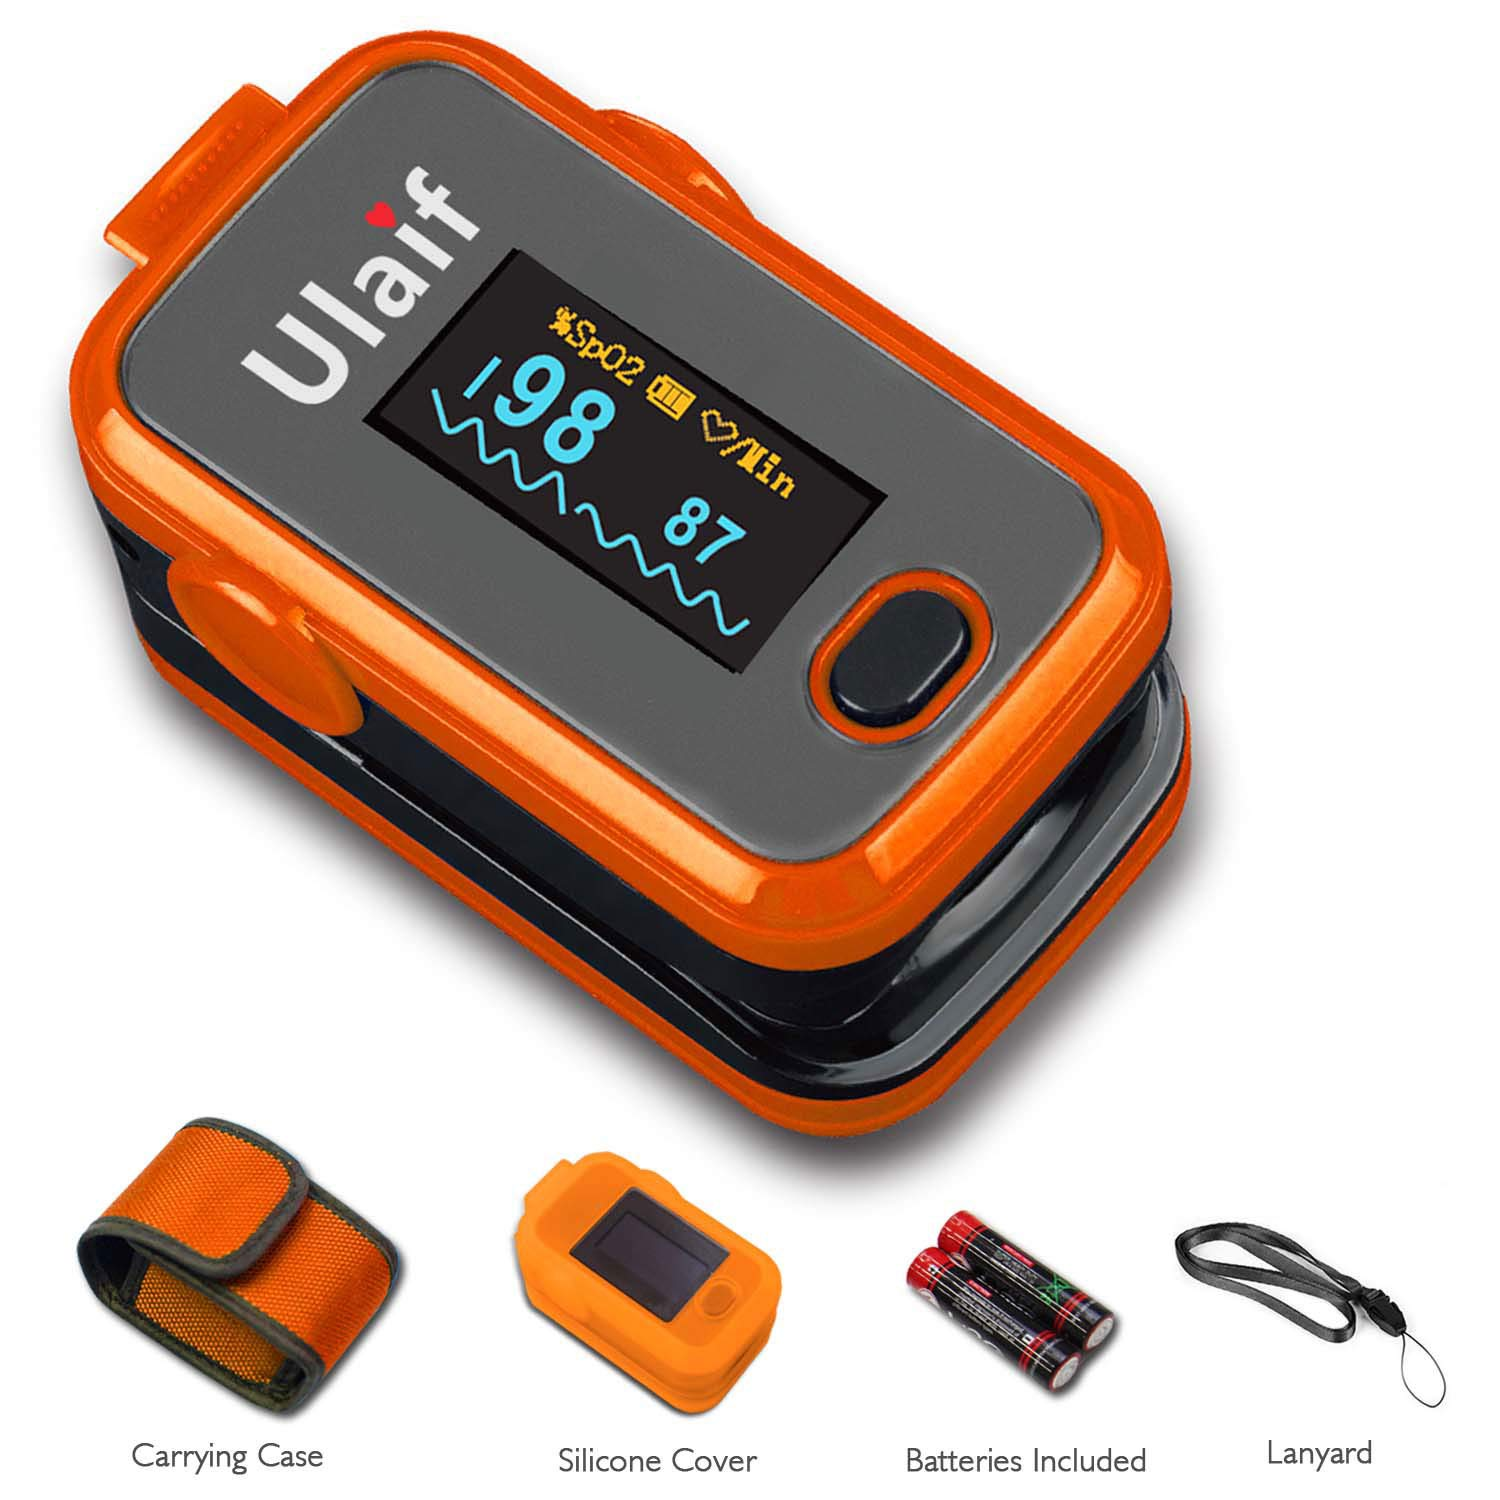 Ulaif Fingertip Pulse Oximeter with OLED Display Portable Oximetry Blood Oxygen Saturation Monitor SpO2 Finger Pulse Oximeter Readings with Carrying Case Silicon Case Lanyard and Batteries